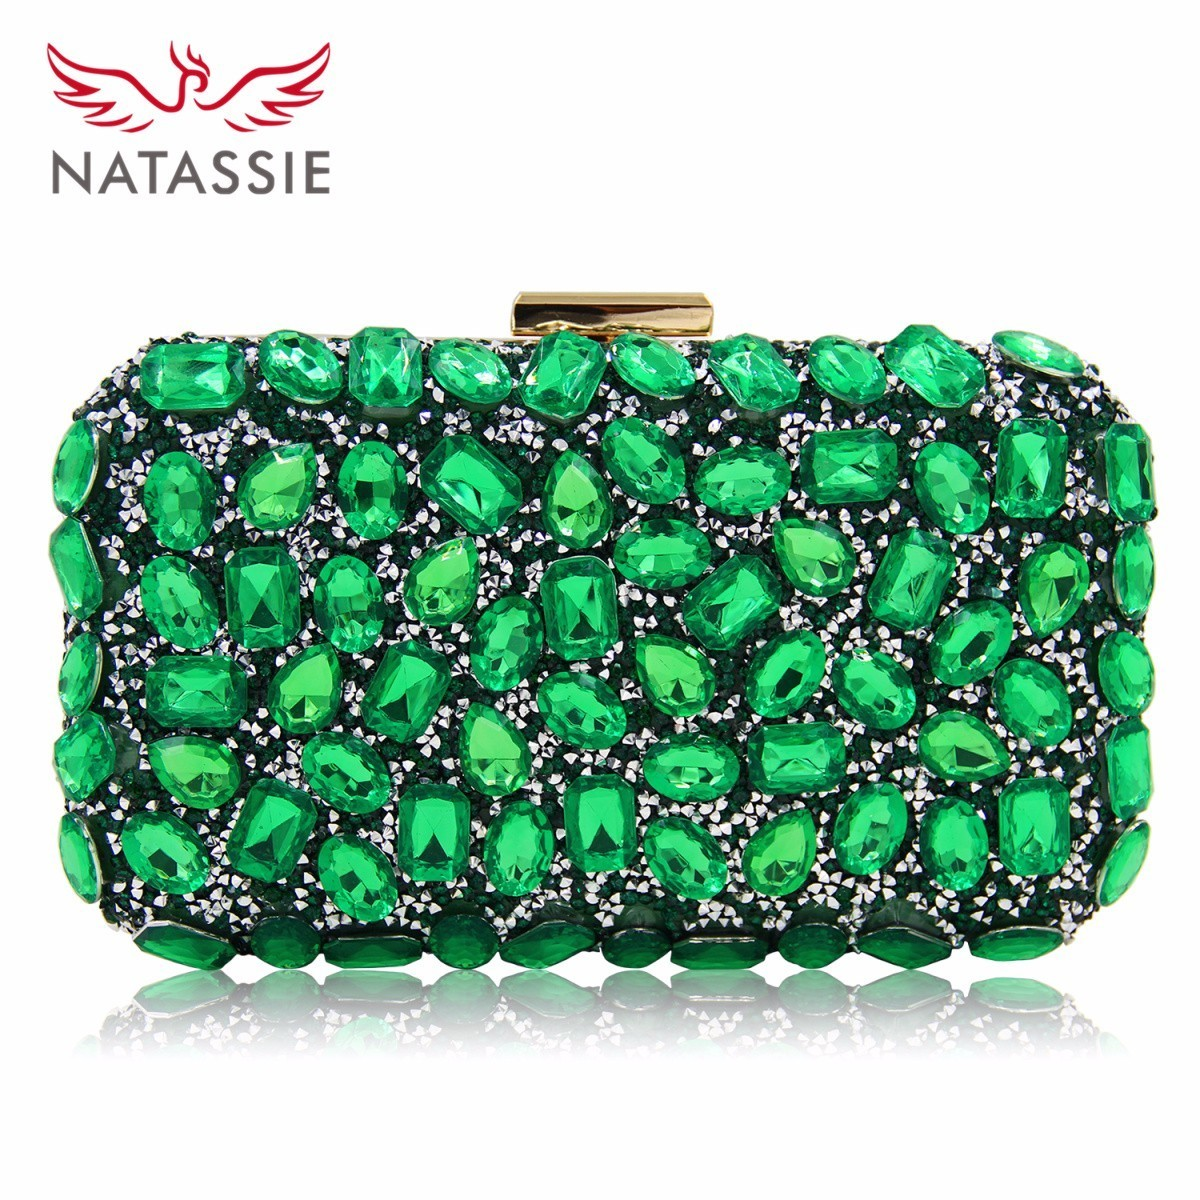 Natassie Women Clutch Bag Ladies Evening Bags Purses Female Gold Clutch Purses Wedding Clutches эра лампа галогенная g4 jc 20w 12v 100 1000